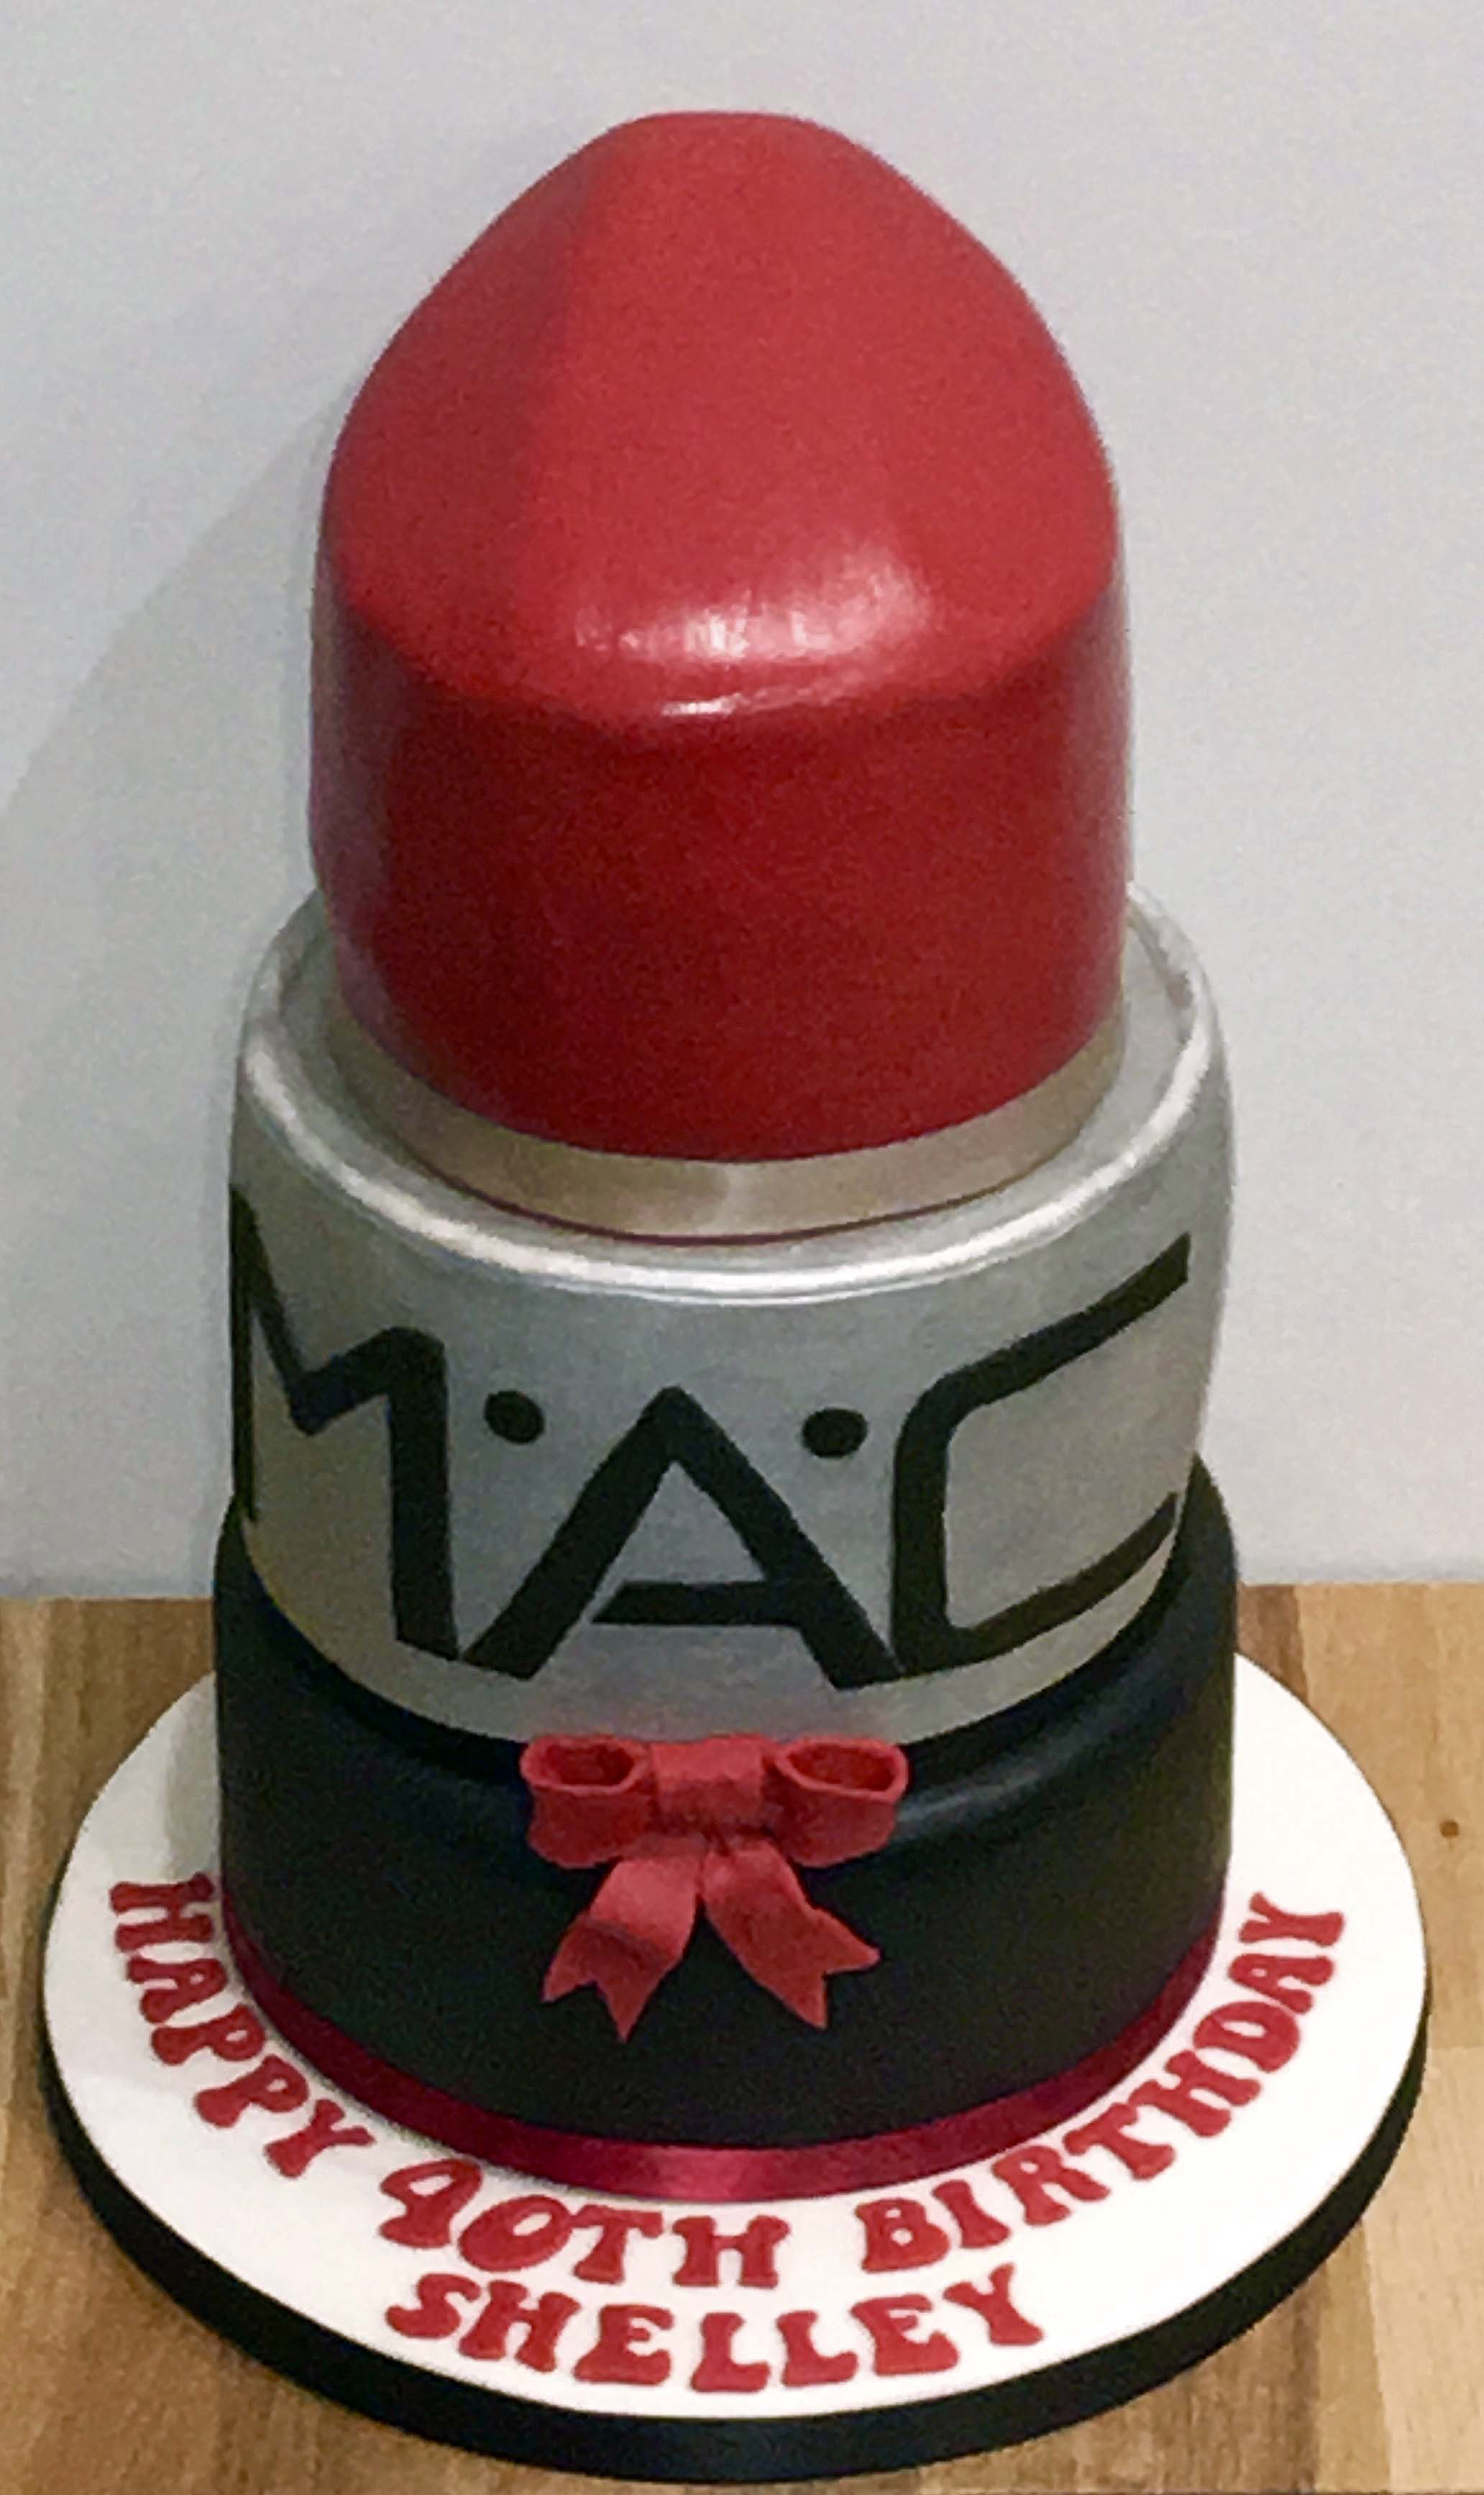 MAC red lipstick cake